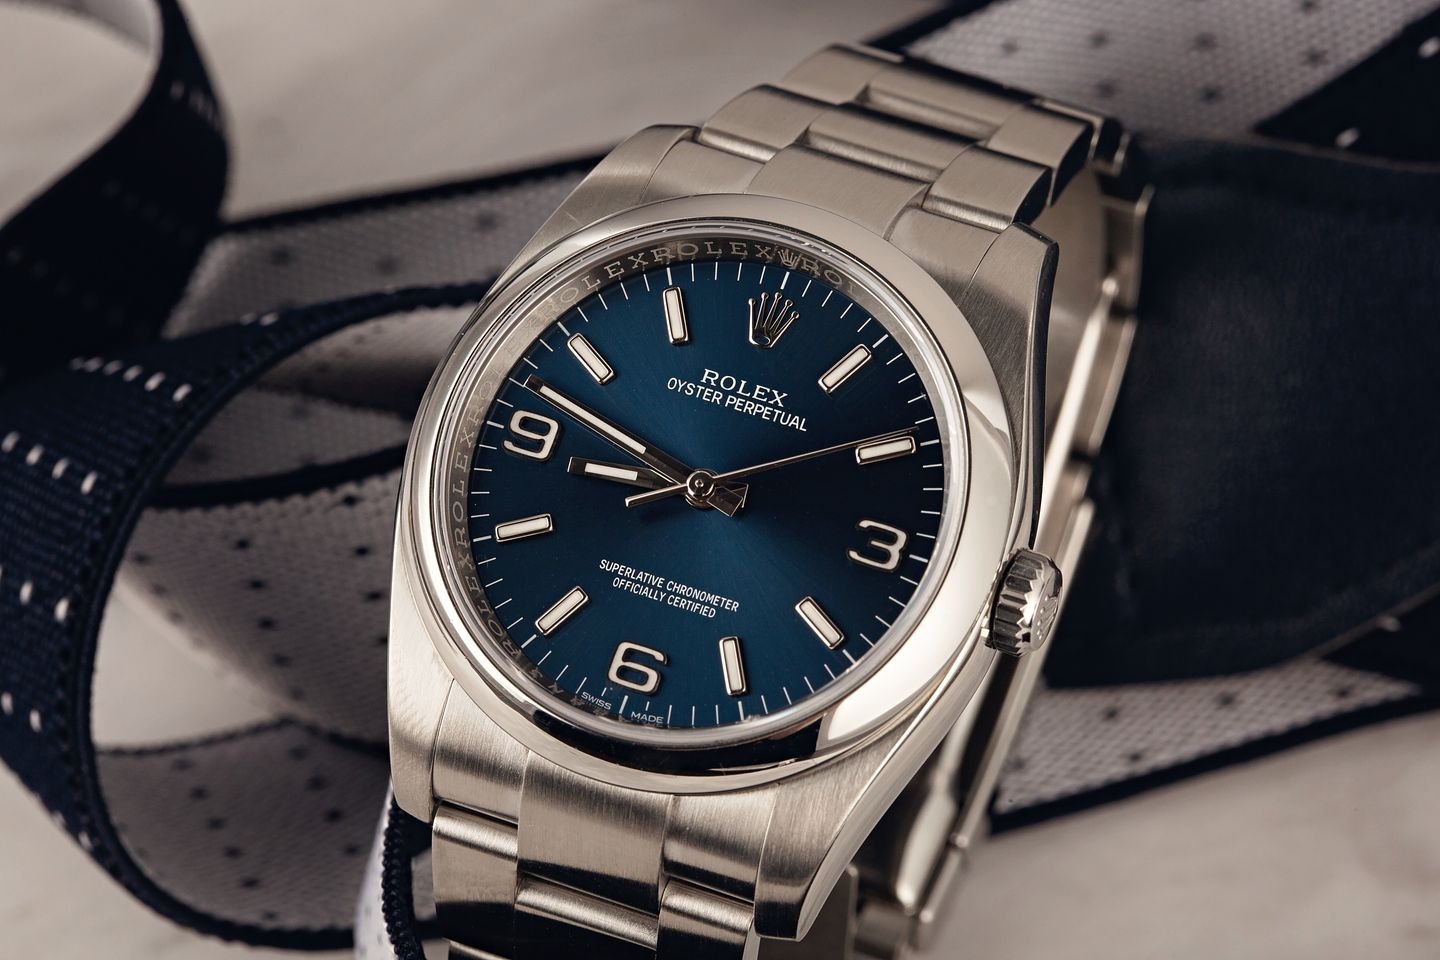 Rolex Oyster Perpetual first tool watch